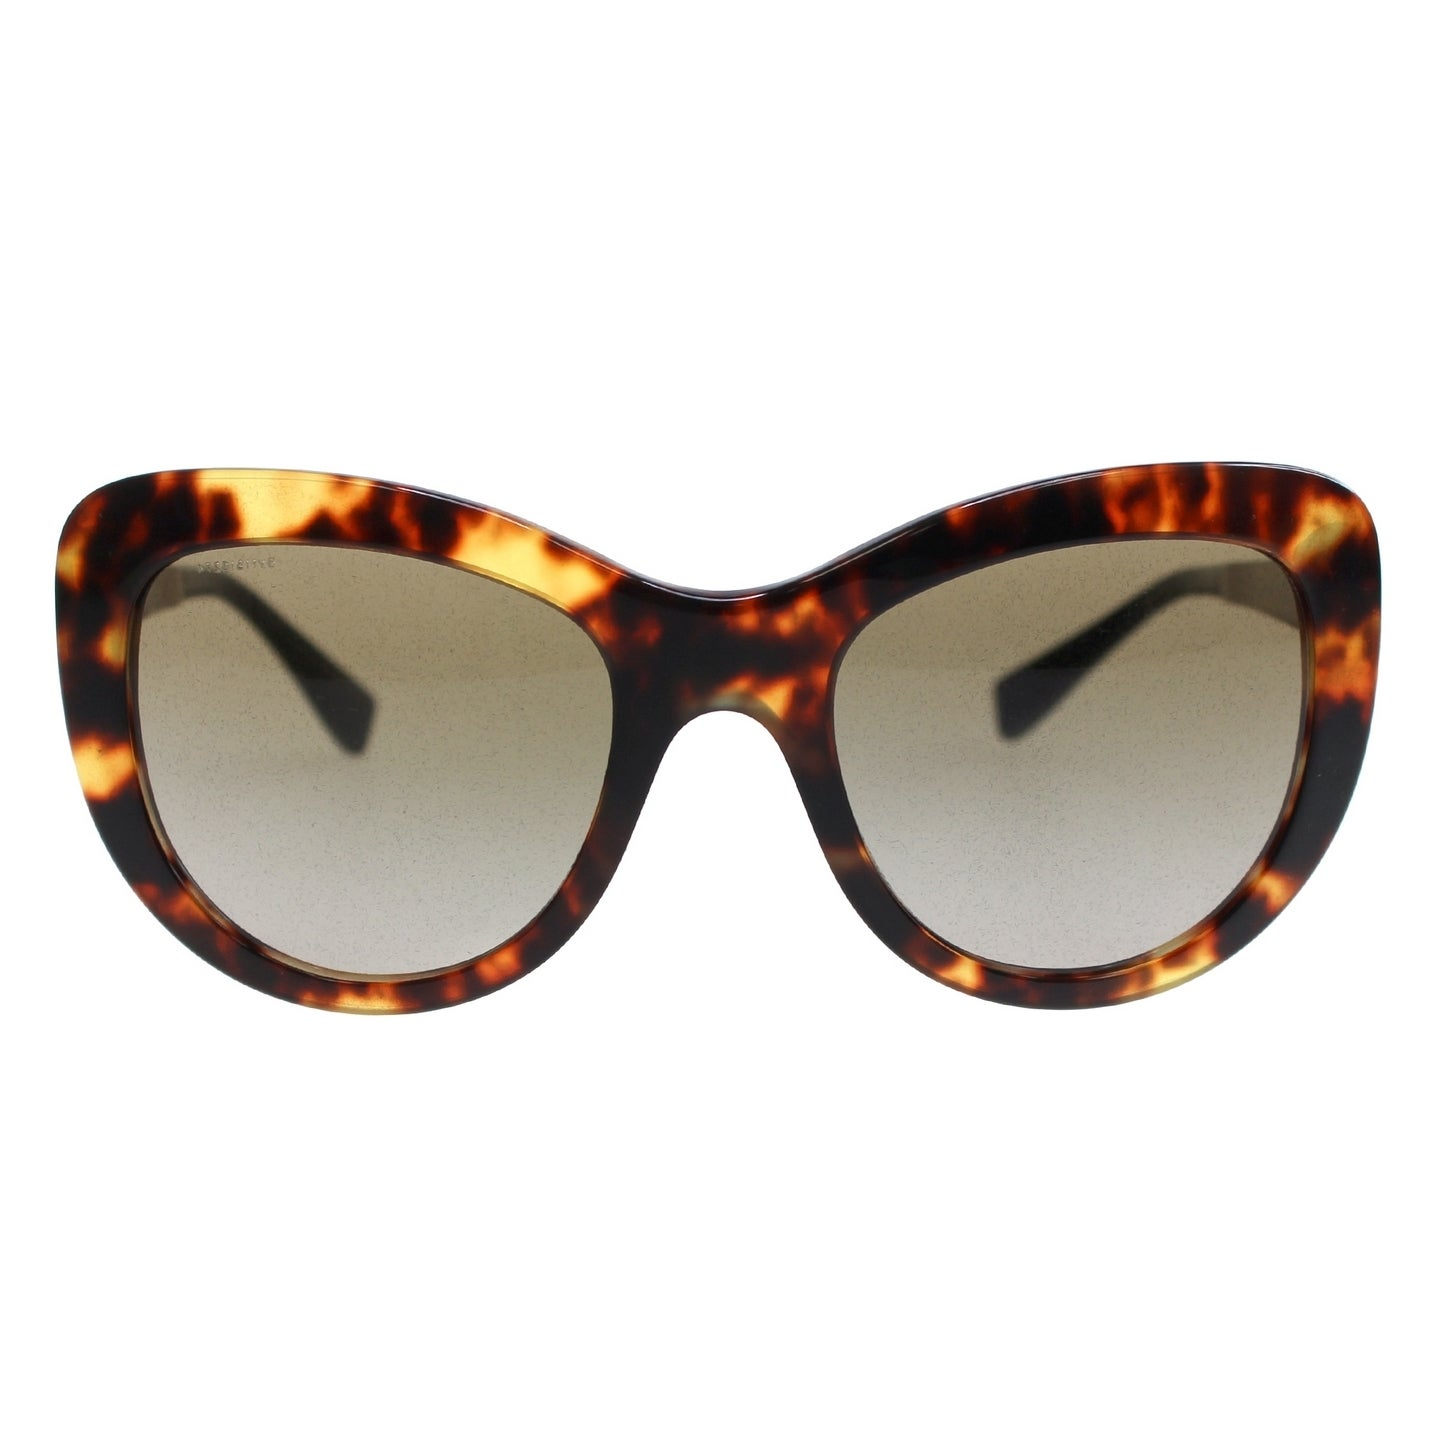 c0c05cccbc0d Shop Versace Women s VE4325 520813 54 Cateye Metal Plastic Brown Brown  Sunglasses - Free Shipping Today - Overstock.com - 14692037